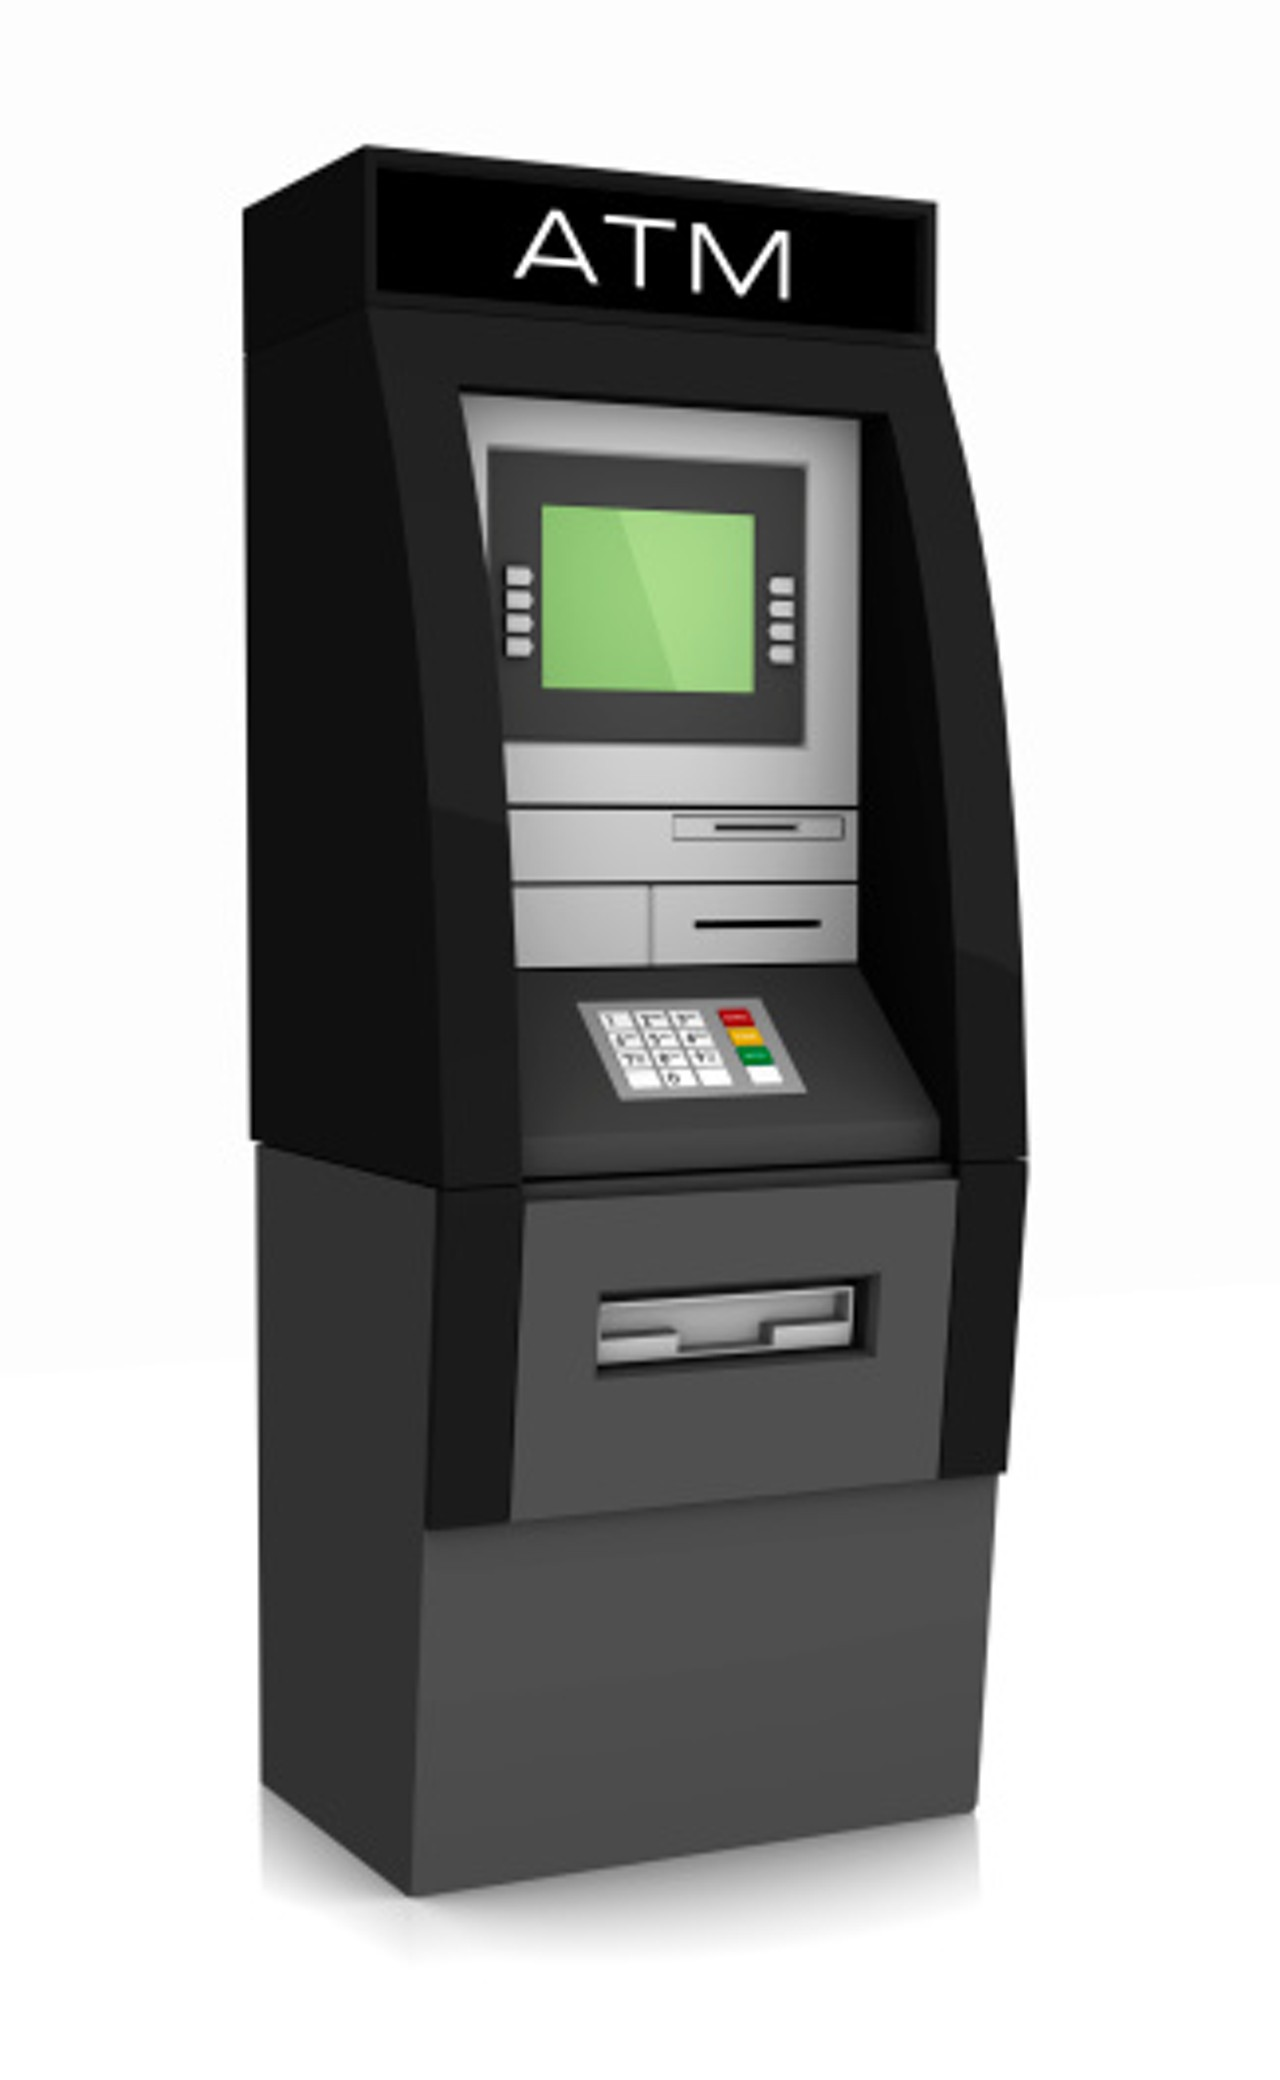 1280x2080 Atm Drilled Open, Robbed Of Cash In Tenderloin Crime Amp Courts